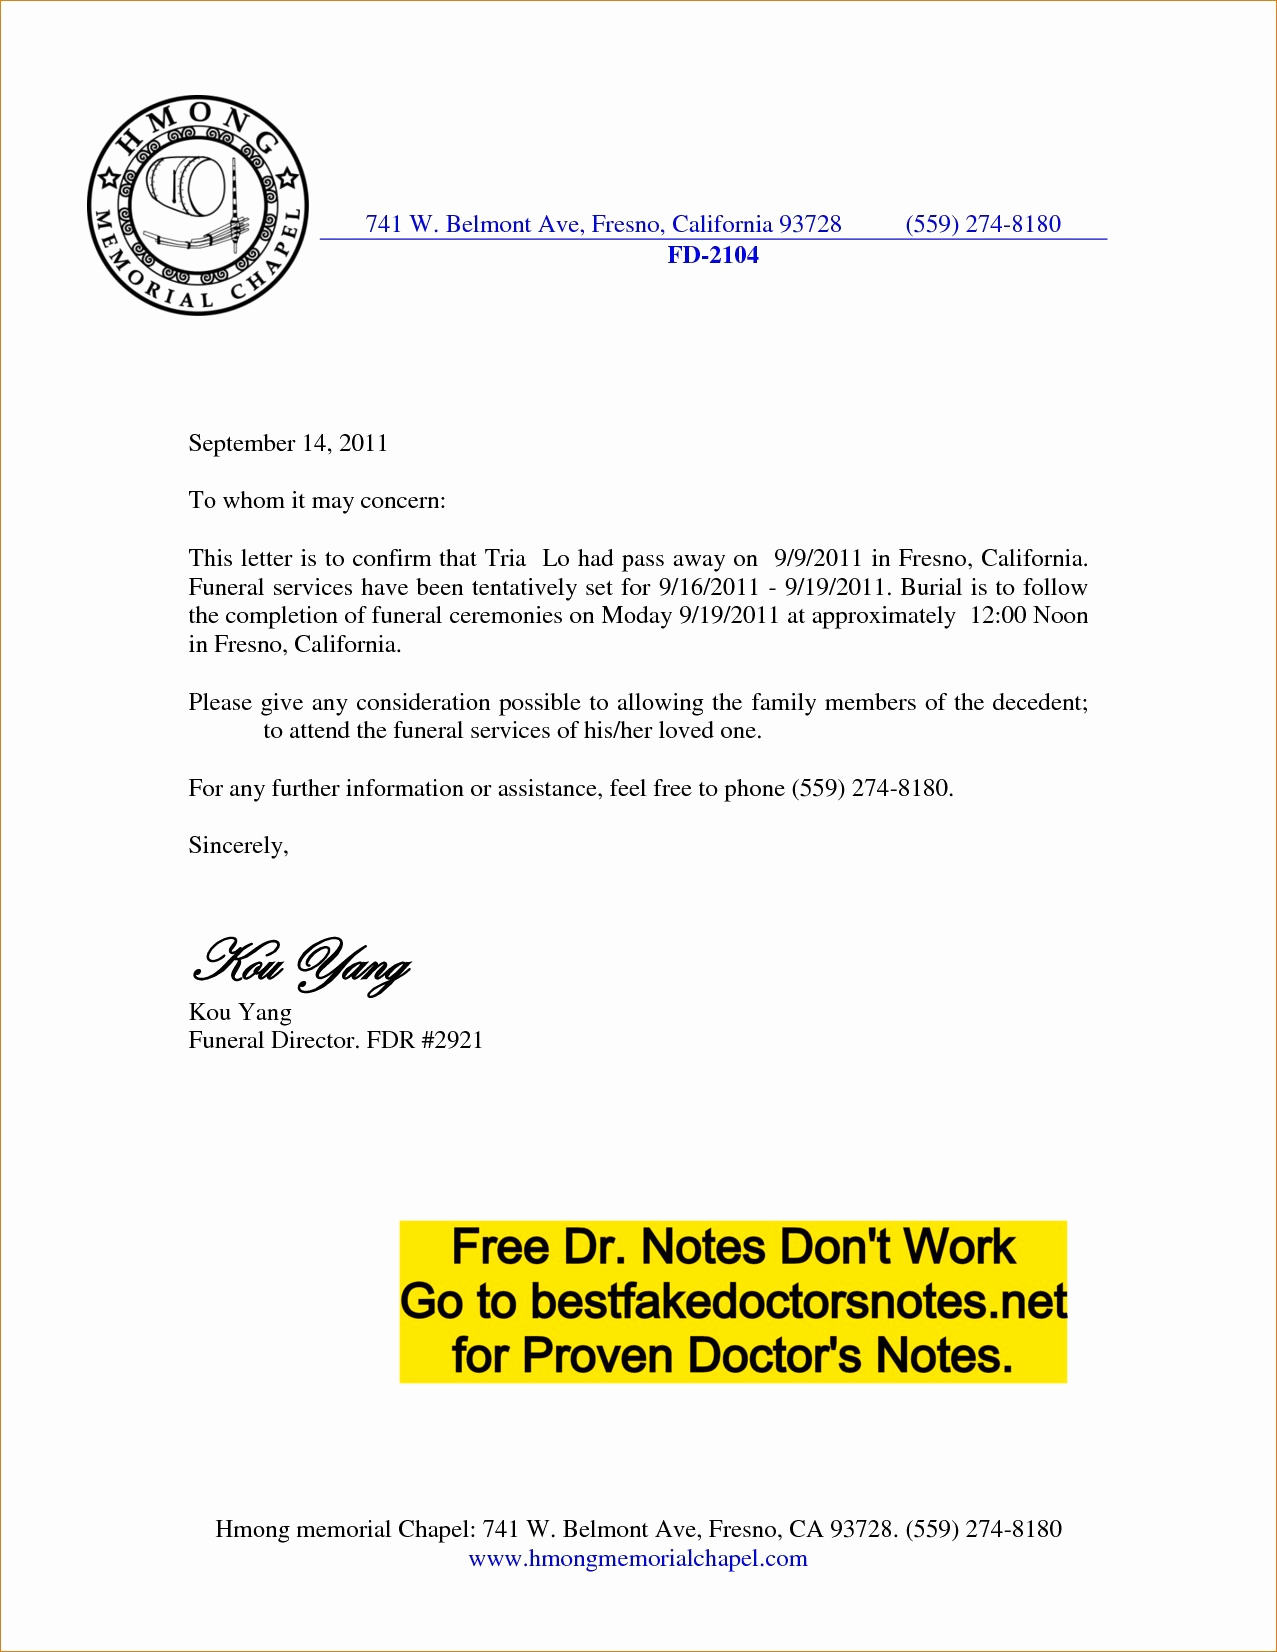 Doctor Notes for Work Free Best Of 4 Easy Ways to Use A Printable Fake Doctors Note